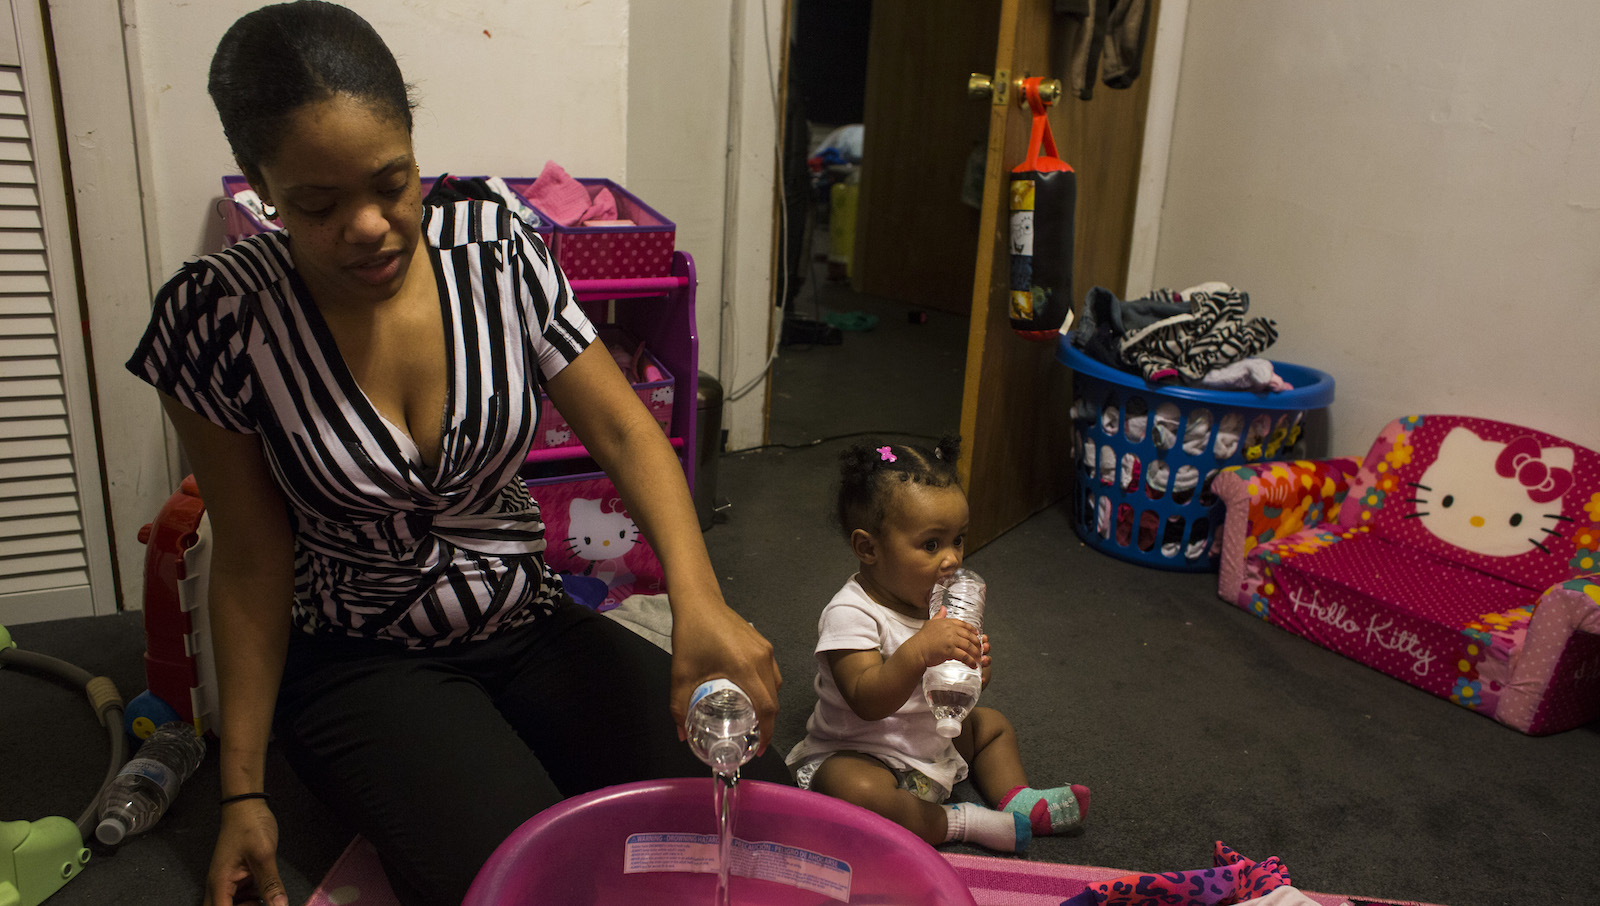 The EPA failed Flint. Now we know exactly how.